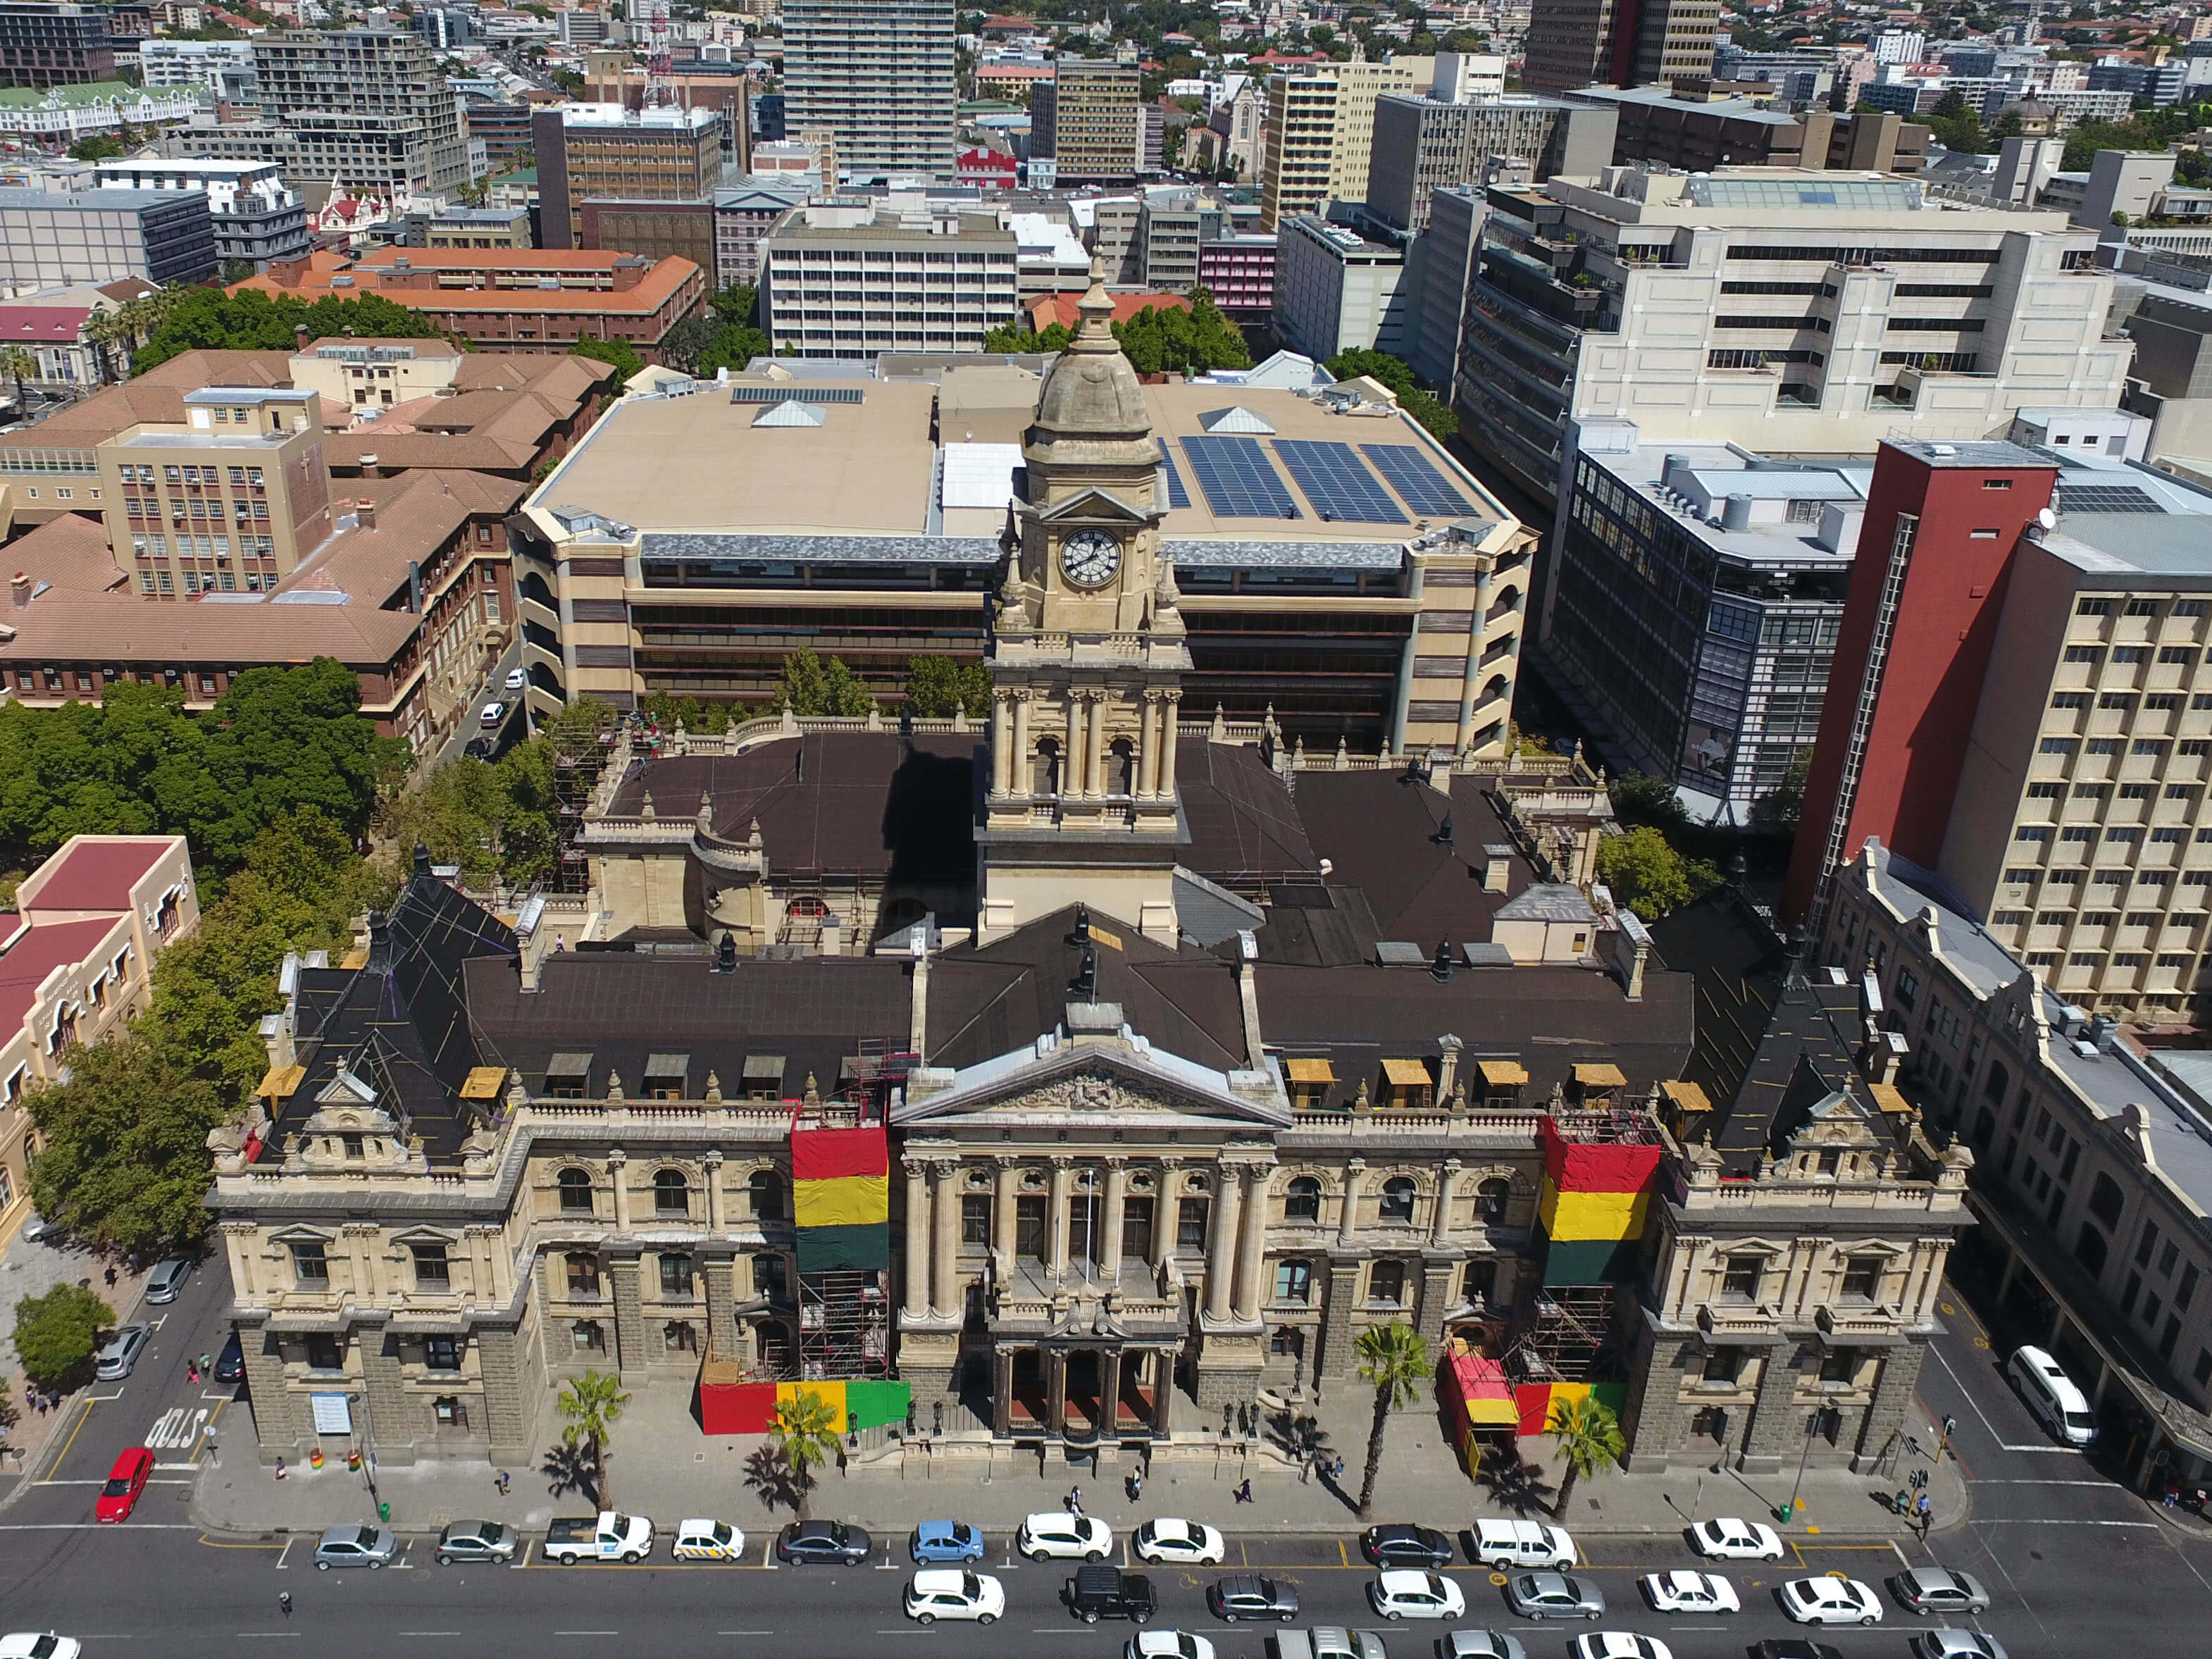 Roofing project at Cape Town City hall by roofing contractors Indawo in Cape Town